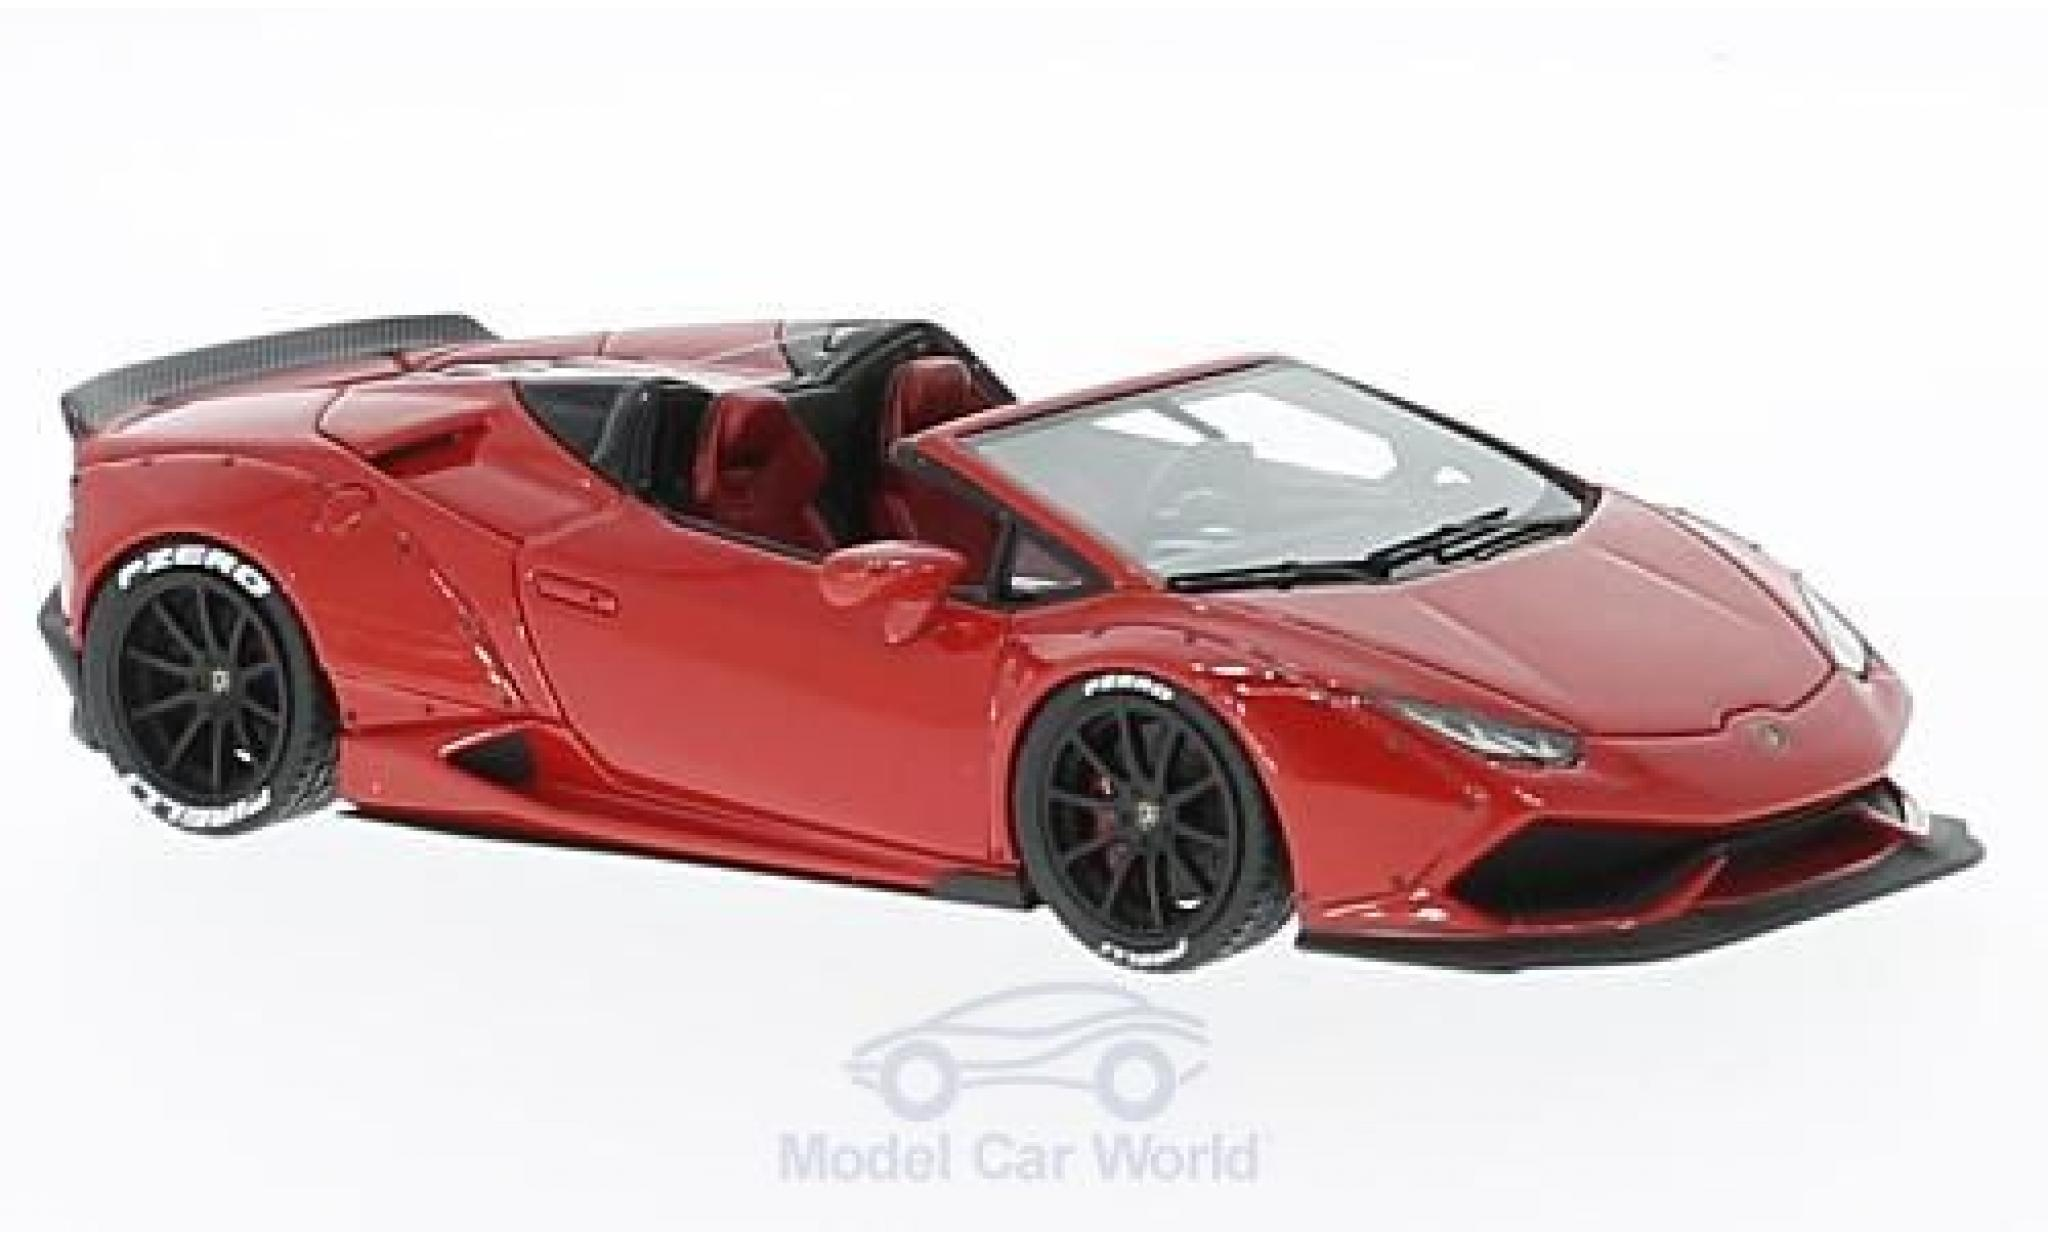 Lamborghini Huracan 1/43 Look Smart Spyder red Aftermarket